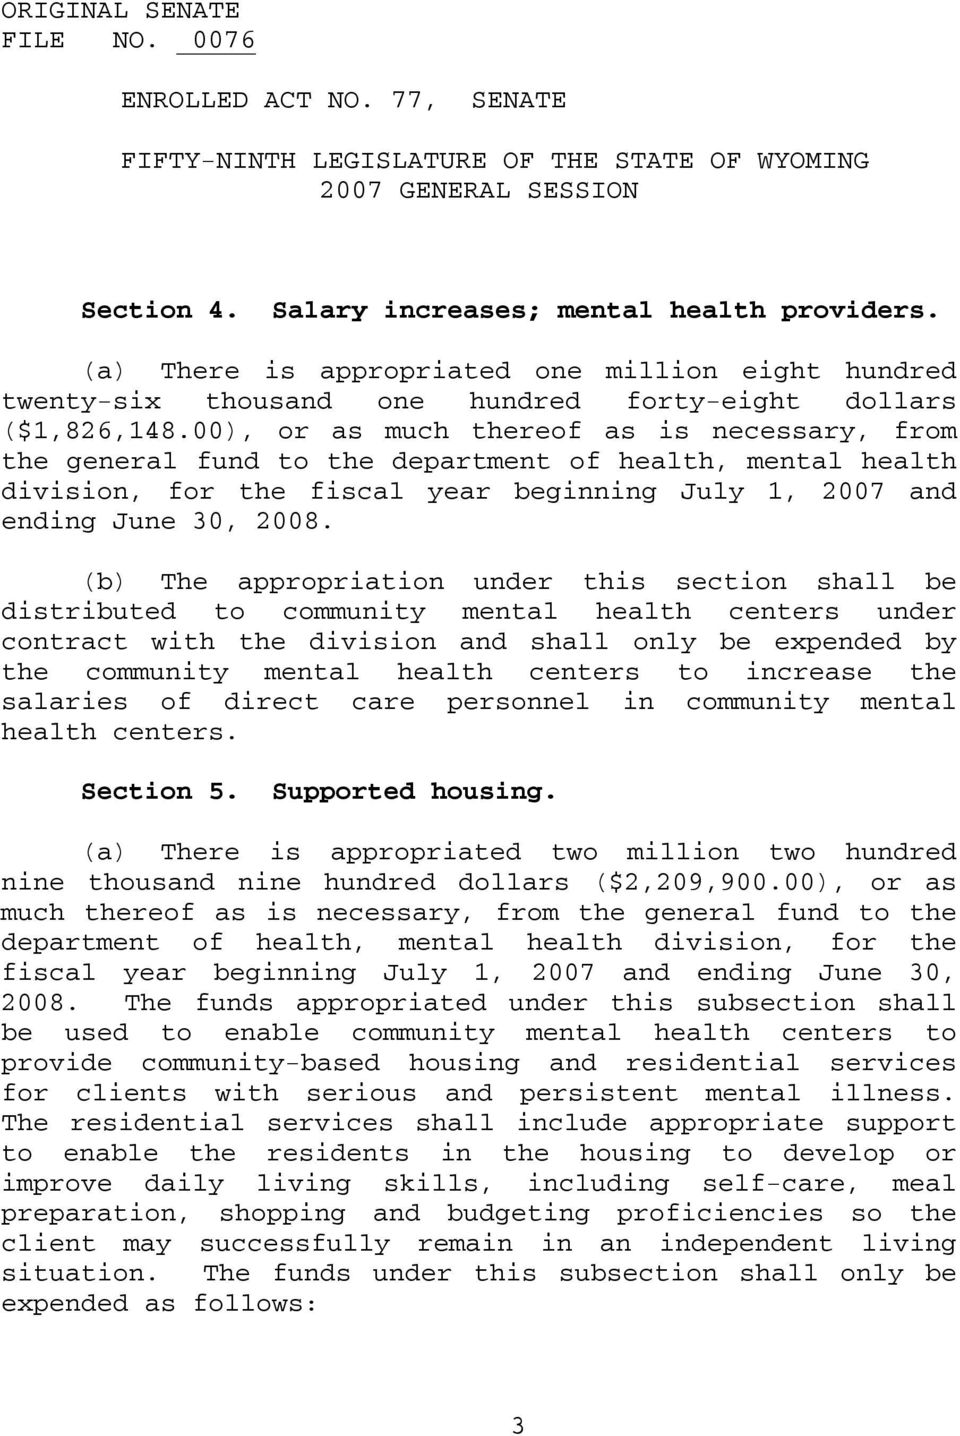 (b) The appropriation under this section shall be distributed to community mental health centers under contract with the division and shall only be expended by the community mental health centers to